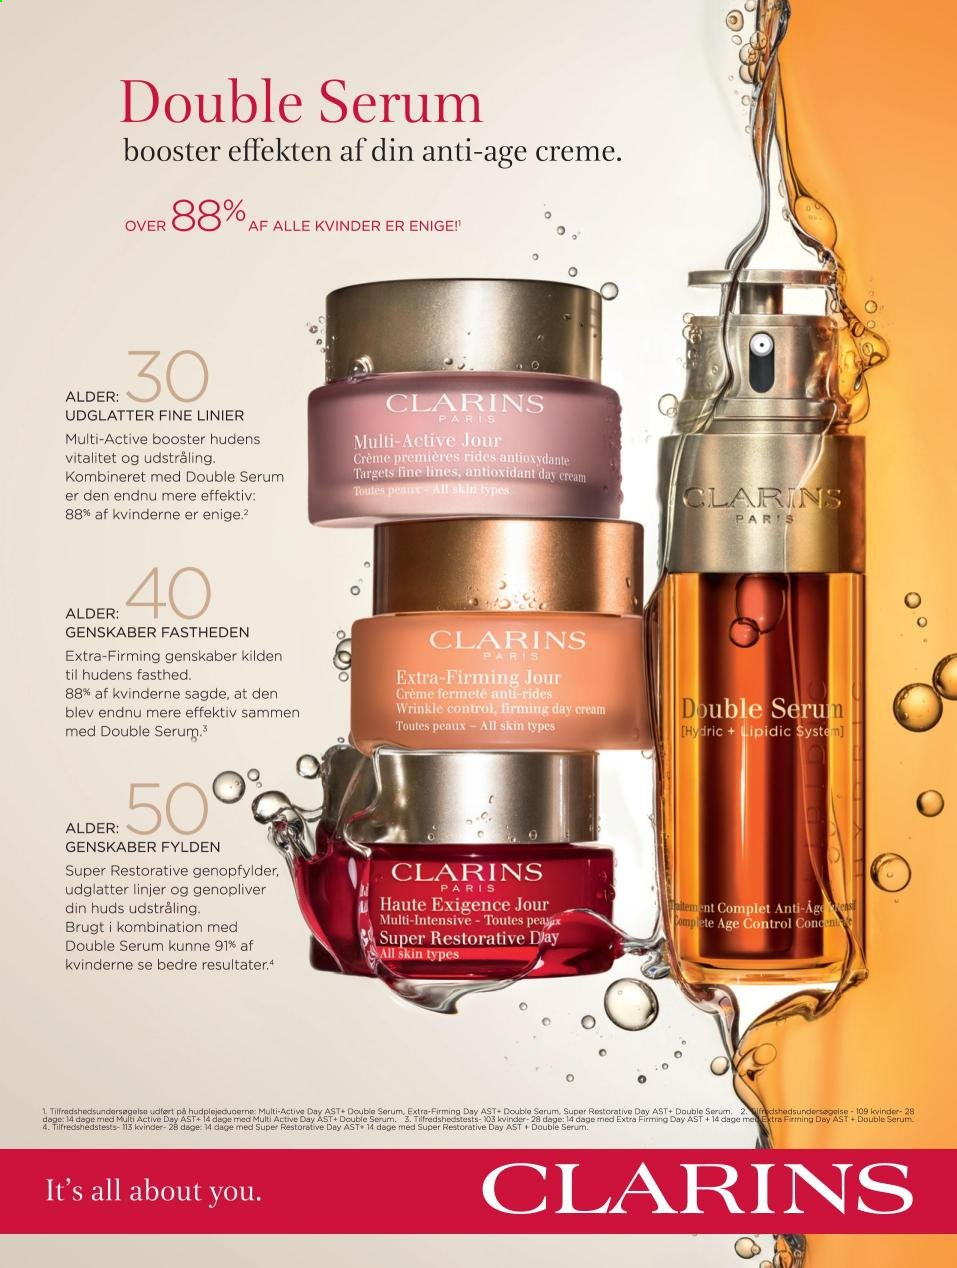 Magasin tilbud  - tilbudsprodukter - clarins, serum, super+. Side 37.